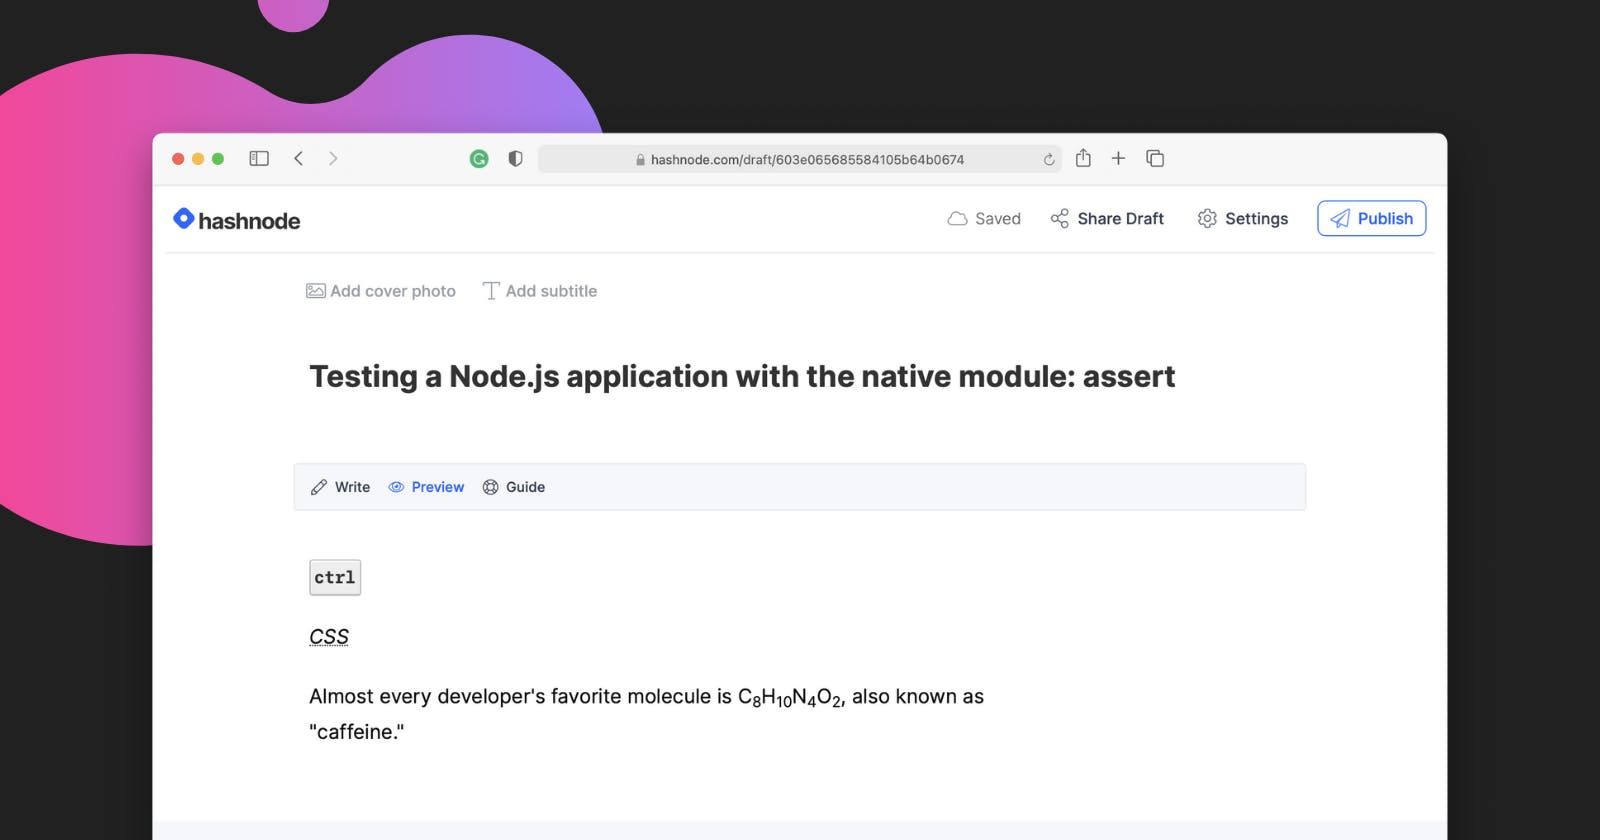 Hashnode's editor now supports 8 new HTML tags - kbd, abbr, sub, sup, and more!